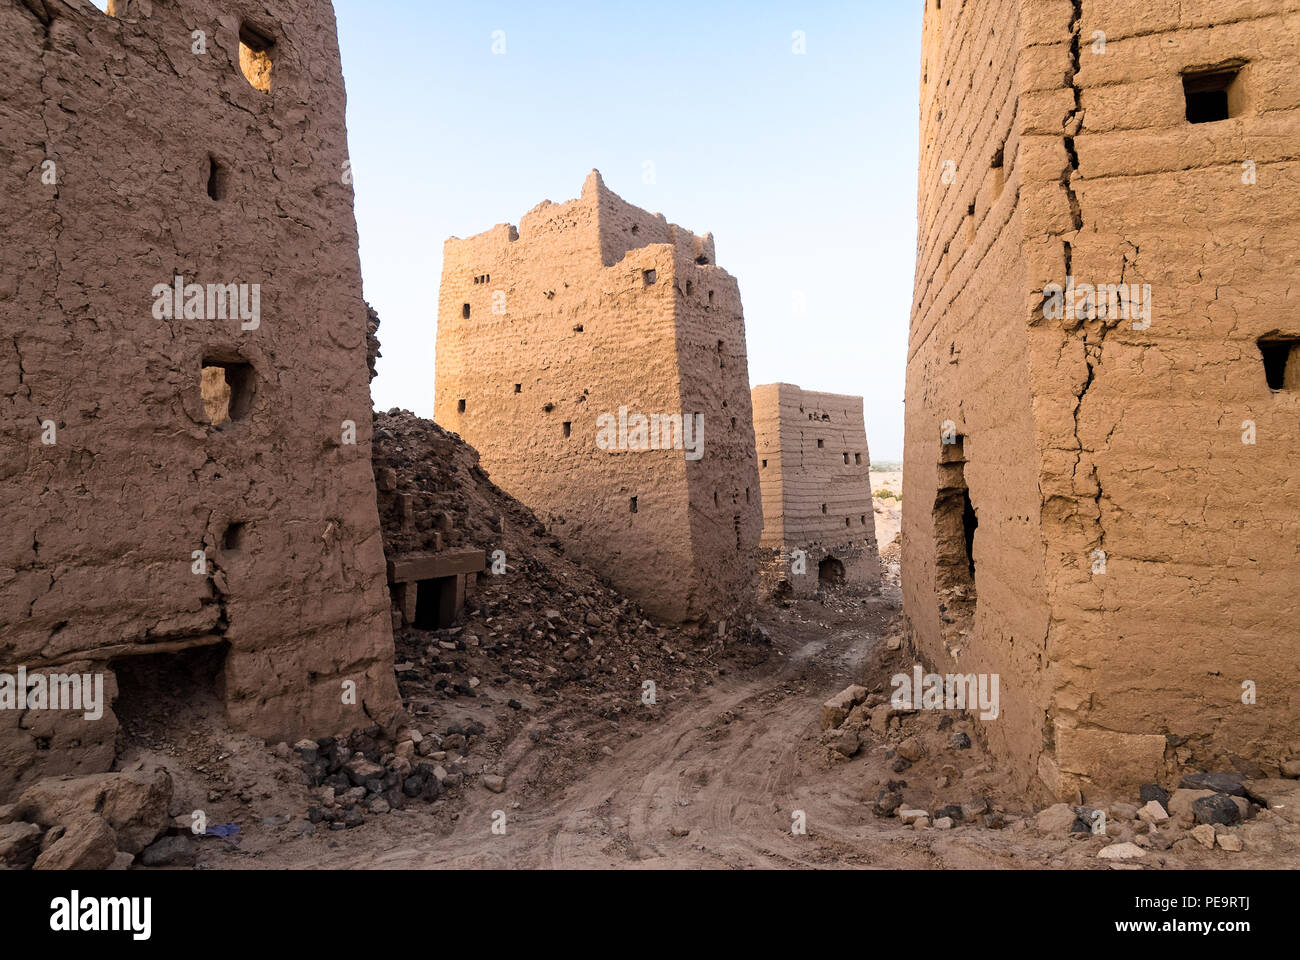 Ruined multi-storey buildings made of mud in the district of Marib, Yemen - Stock Image